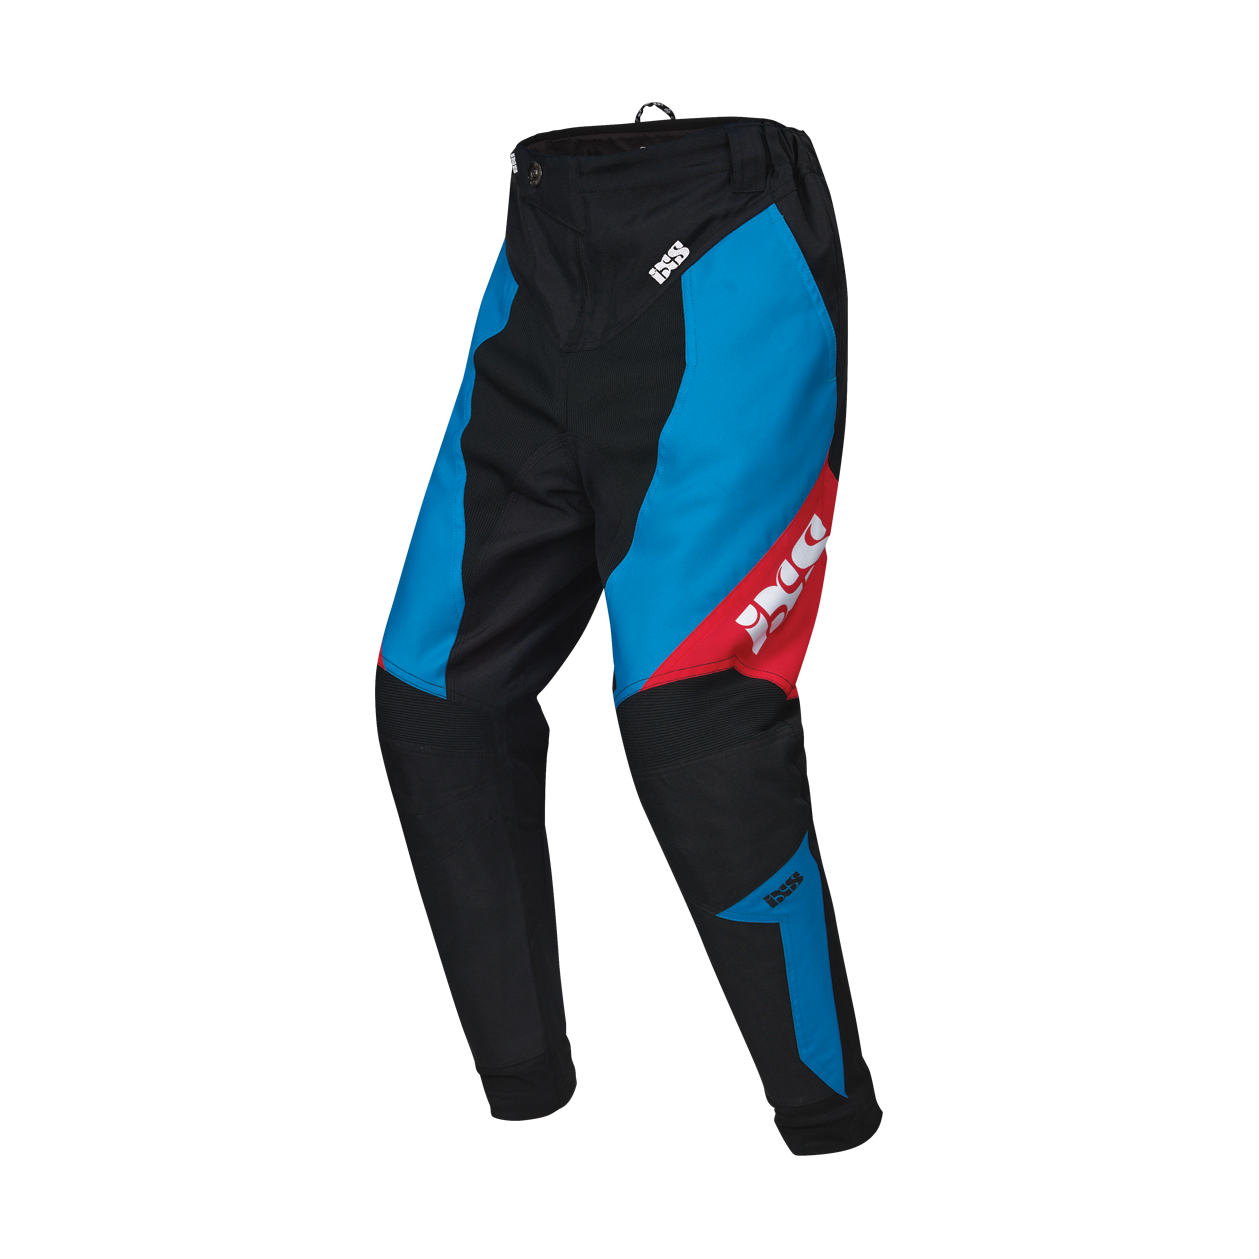 iXS Vertic 6.1 Youth Pants